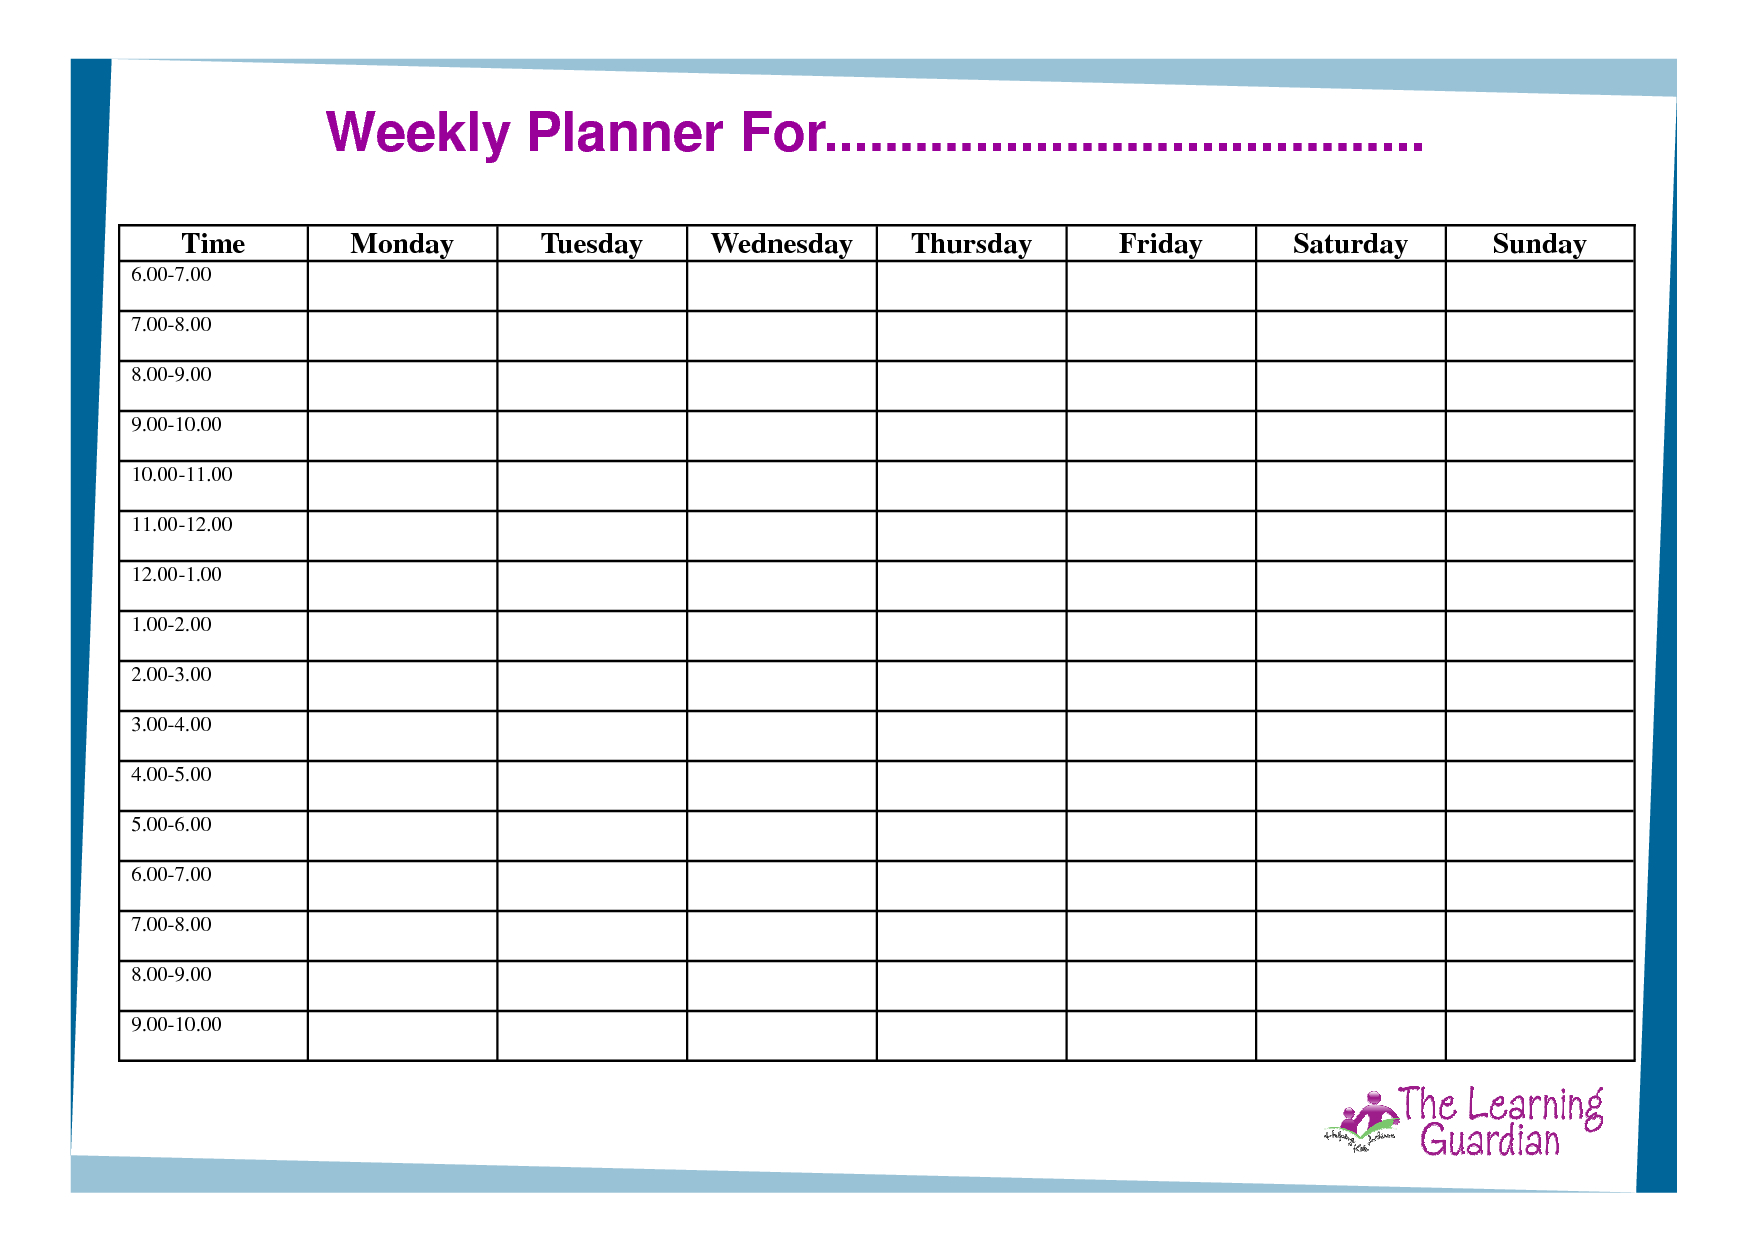 Weekly Planning Calendar Template - Colona.rsd7